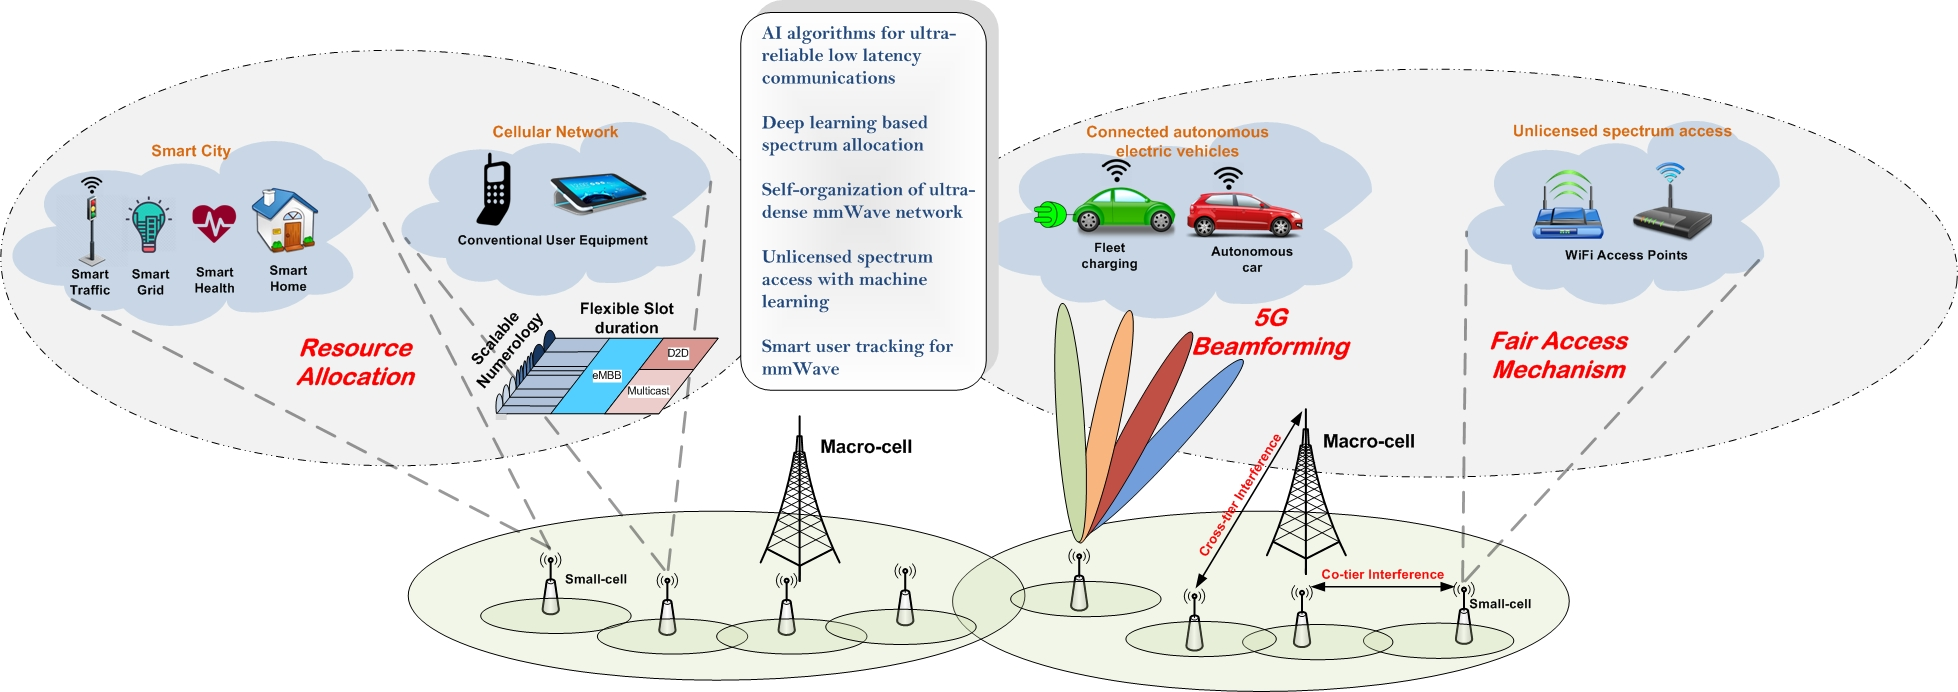 Diagram showing 5G network base stations, resource allocation to Smart City, cellular network and 5G beamforming.